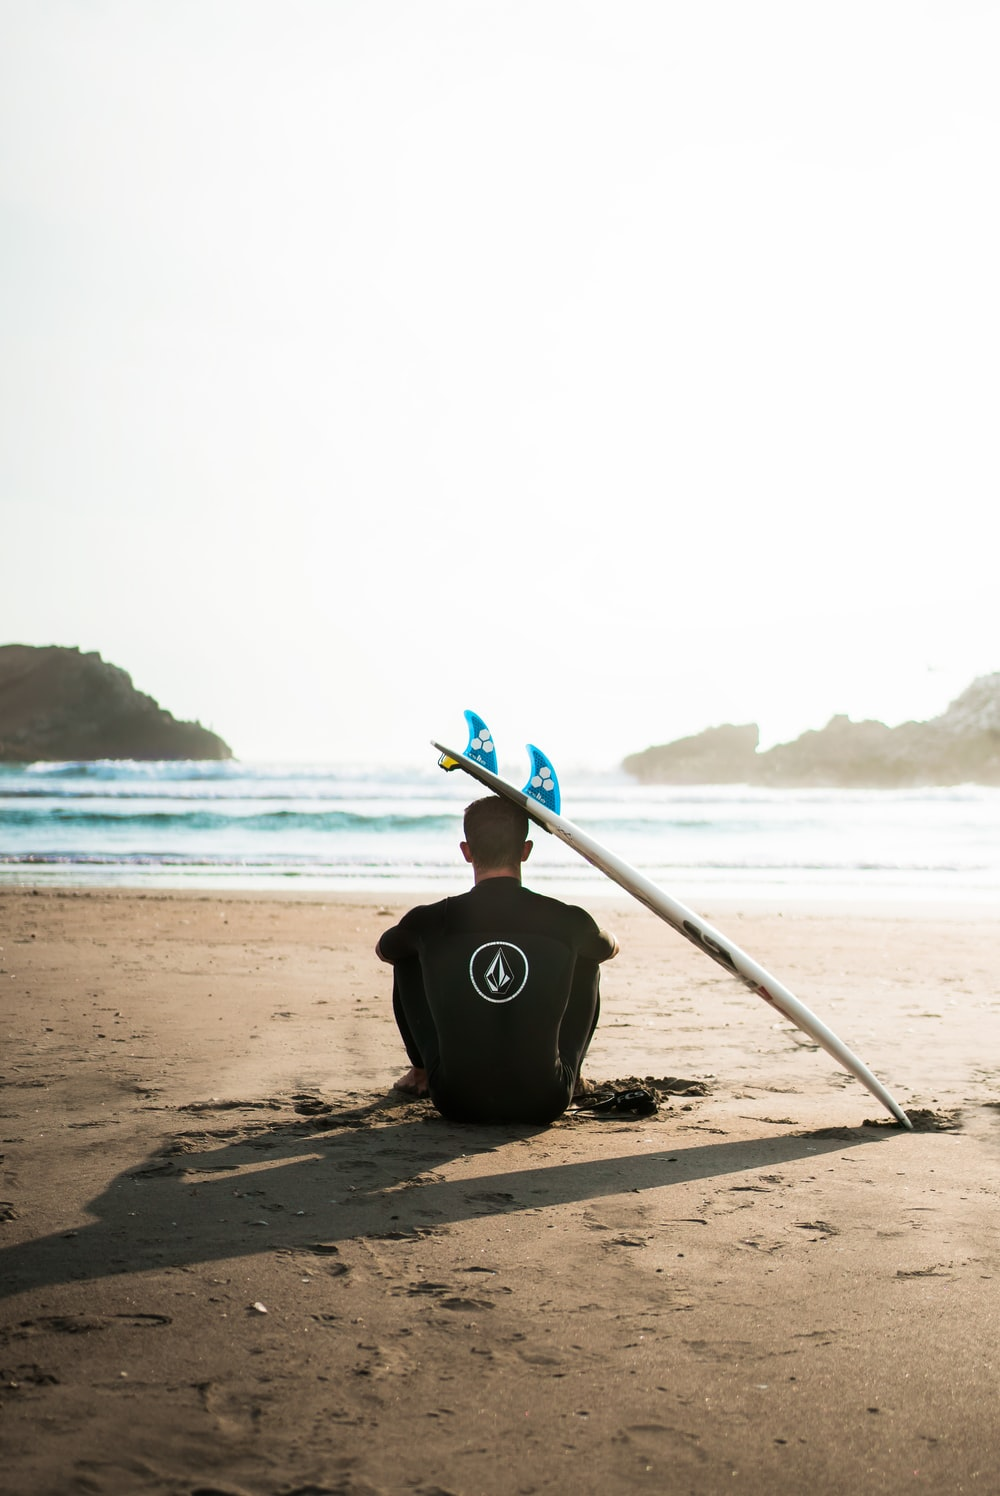 man sitting on sand beside surfboard facing sea during daytime